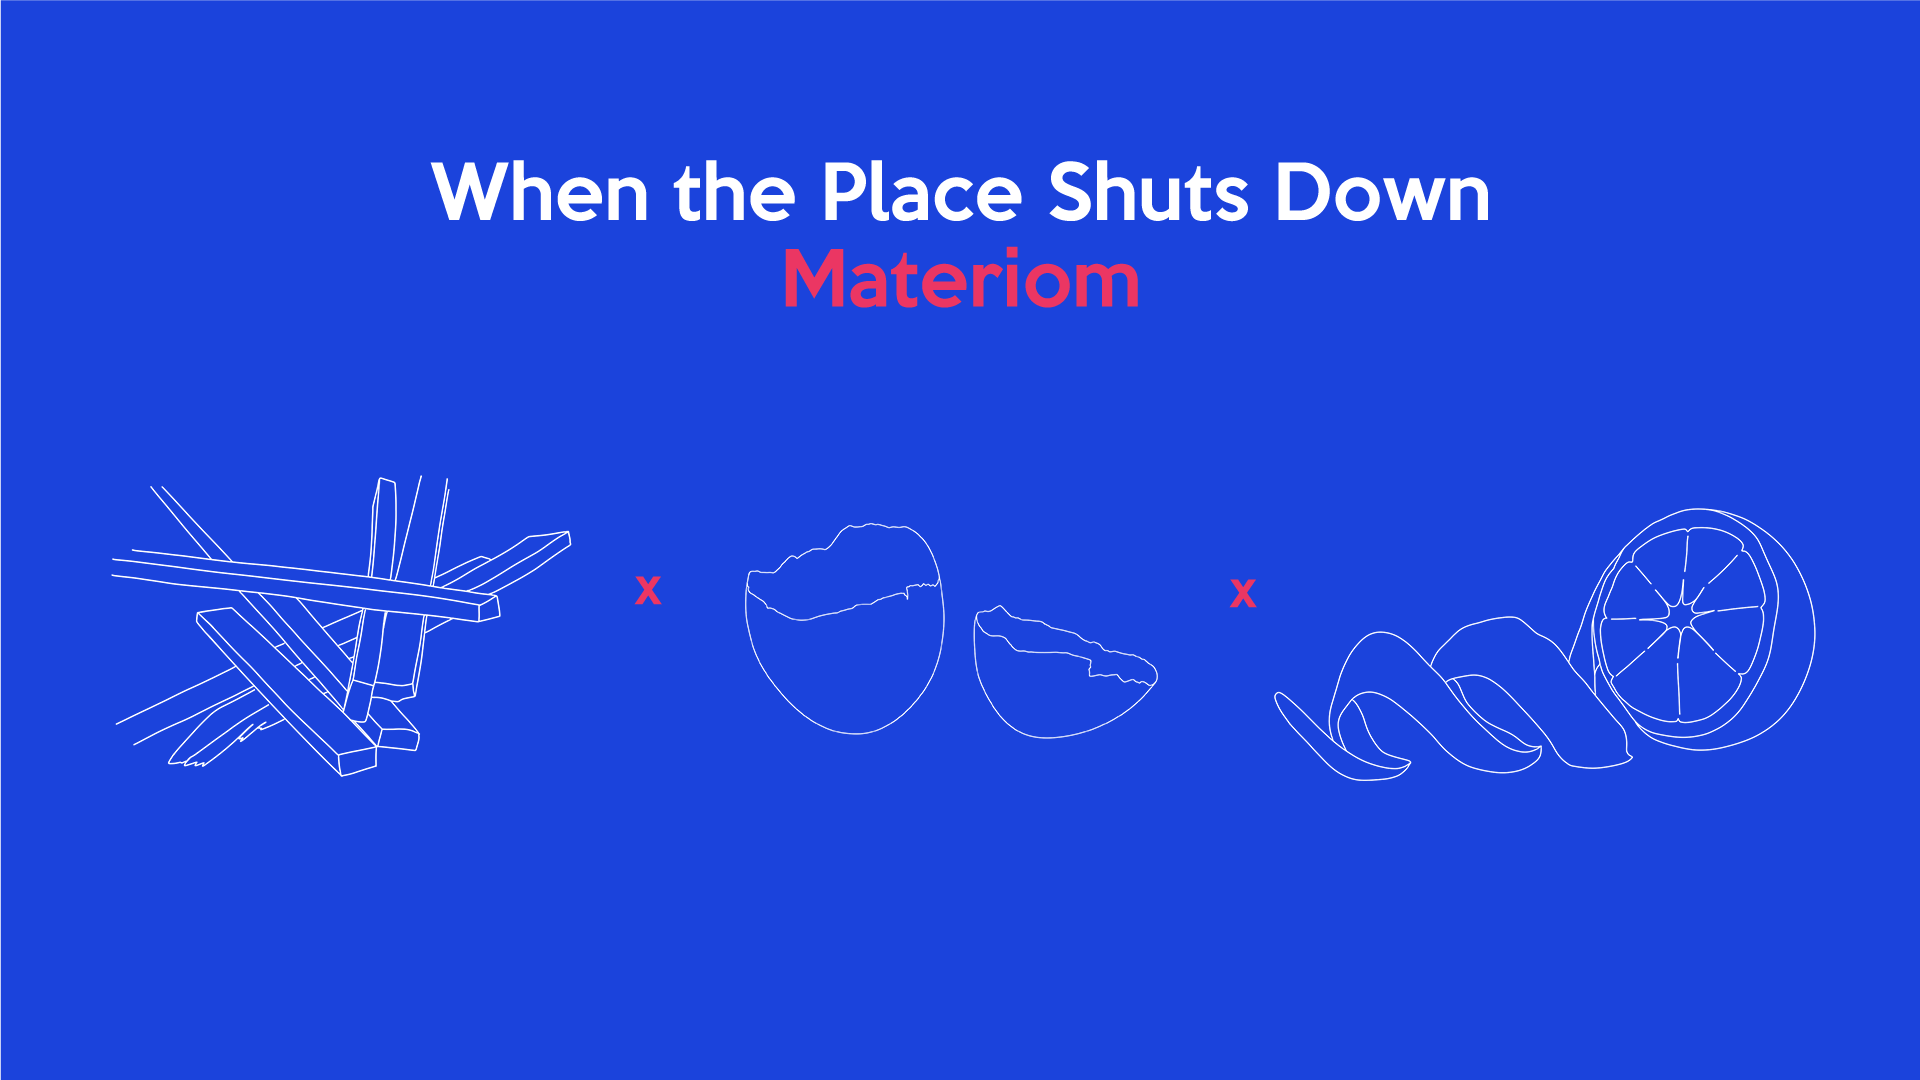 When the Place Shuts Down: Materiom